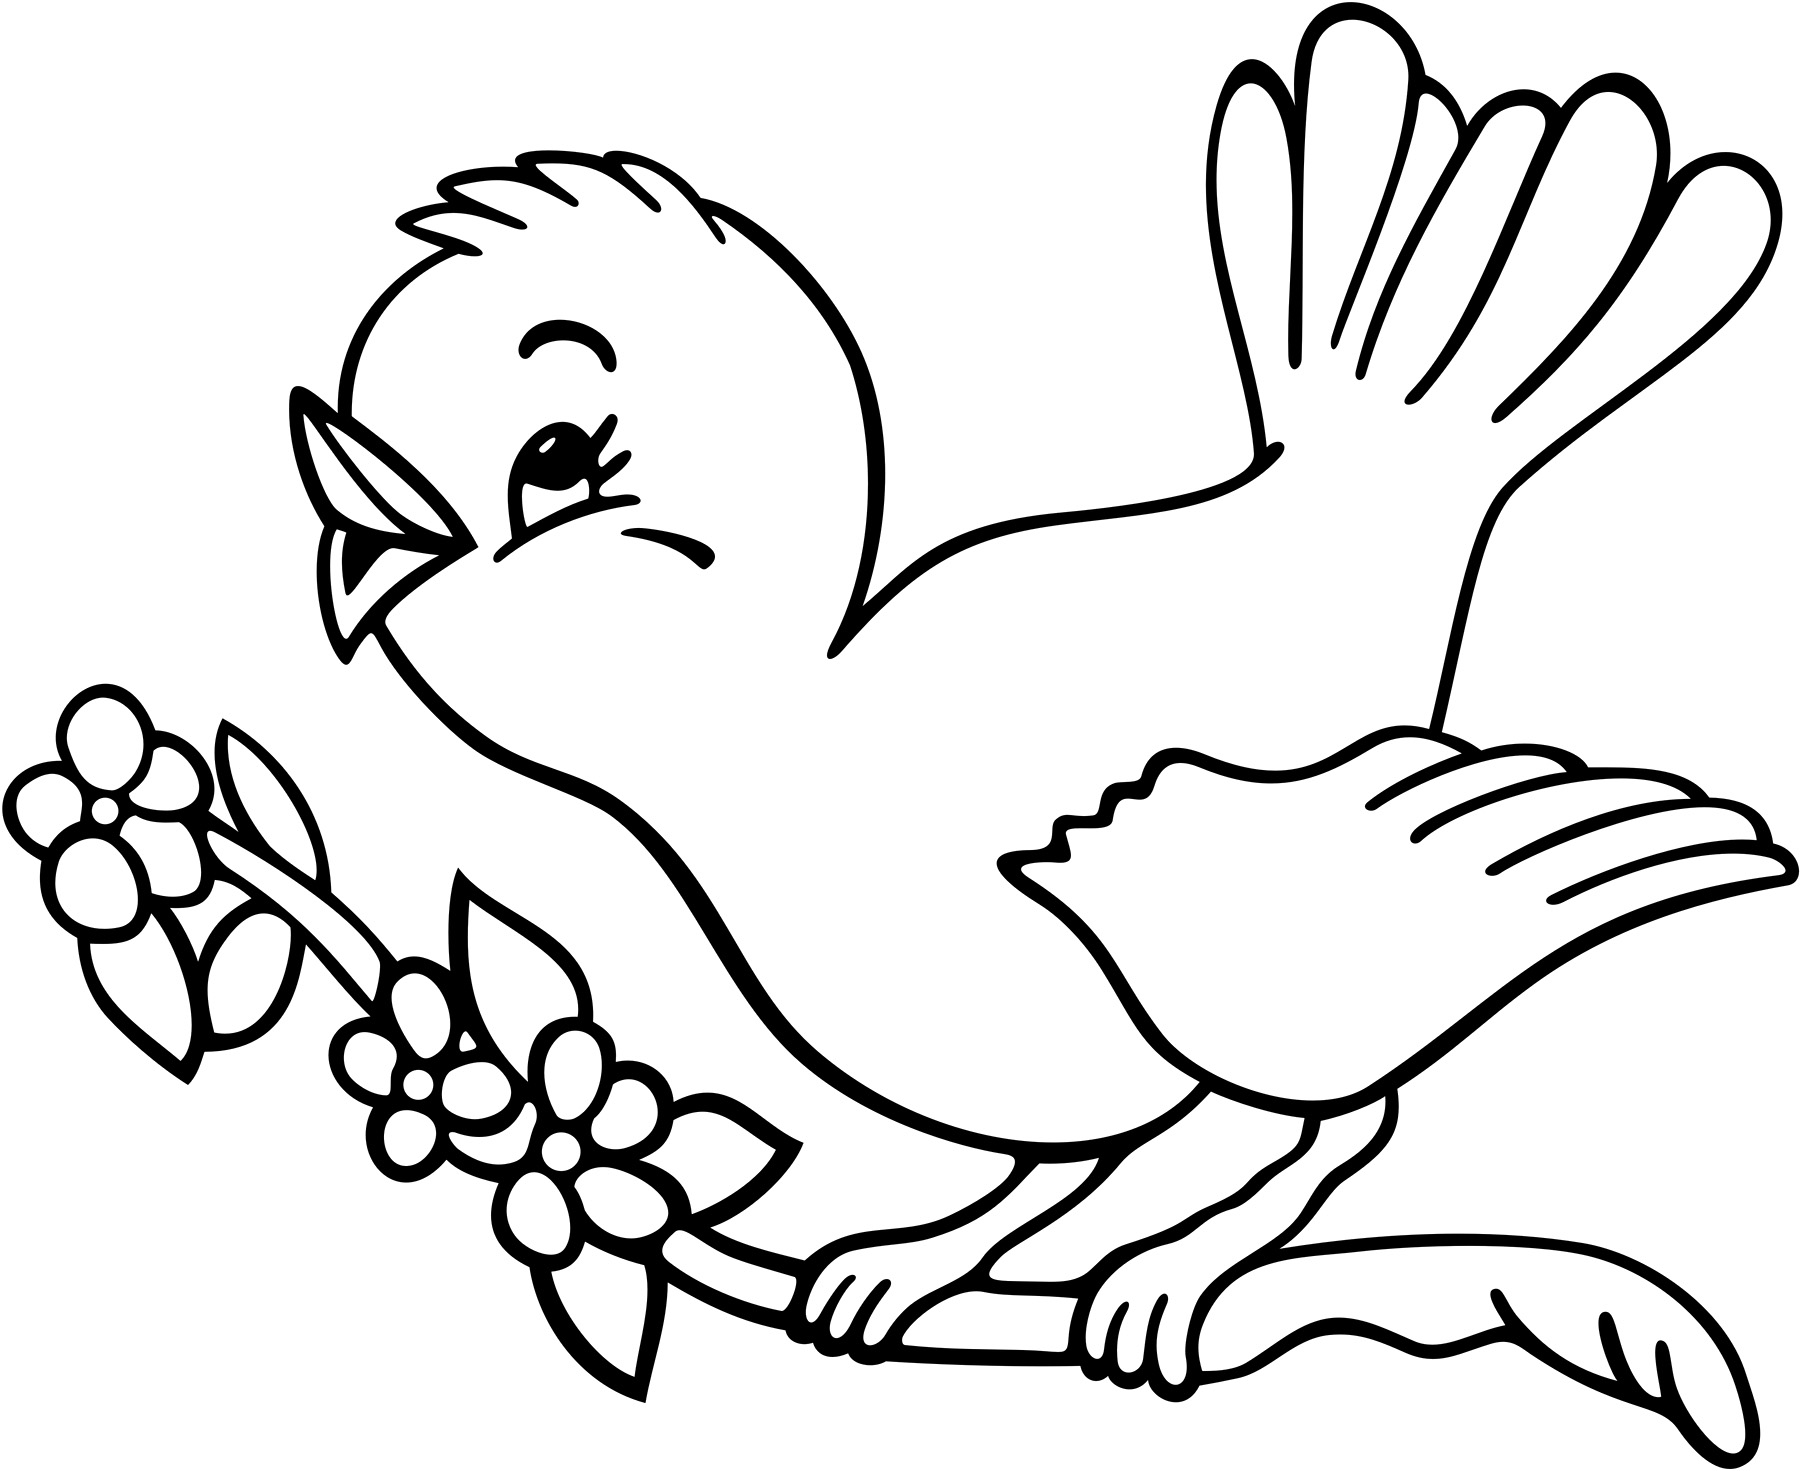 coloring pictures birds bird10 coloring kids coloring pictures birds